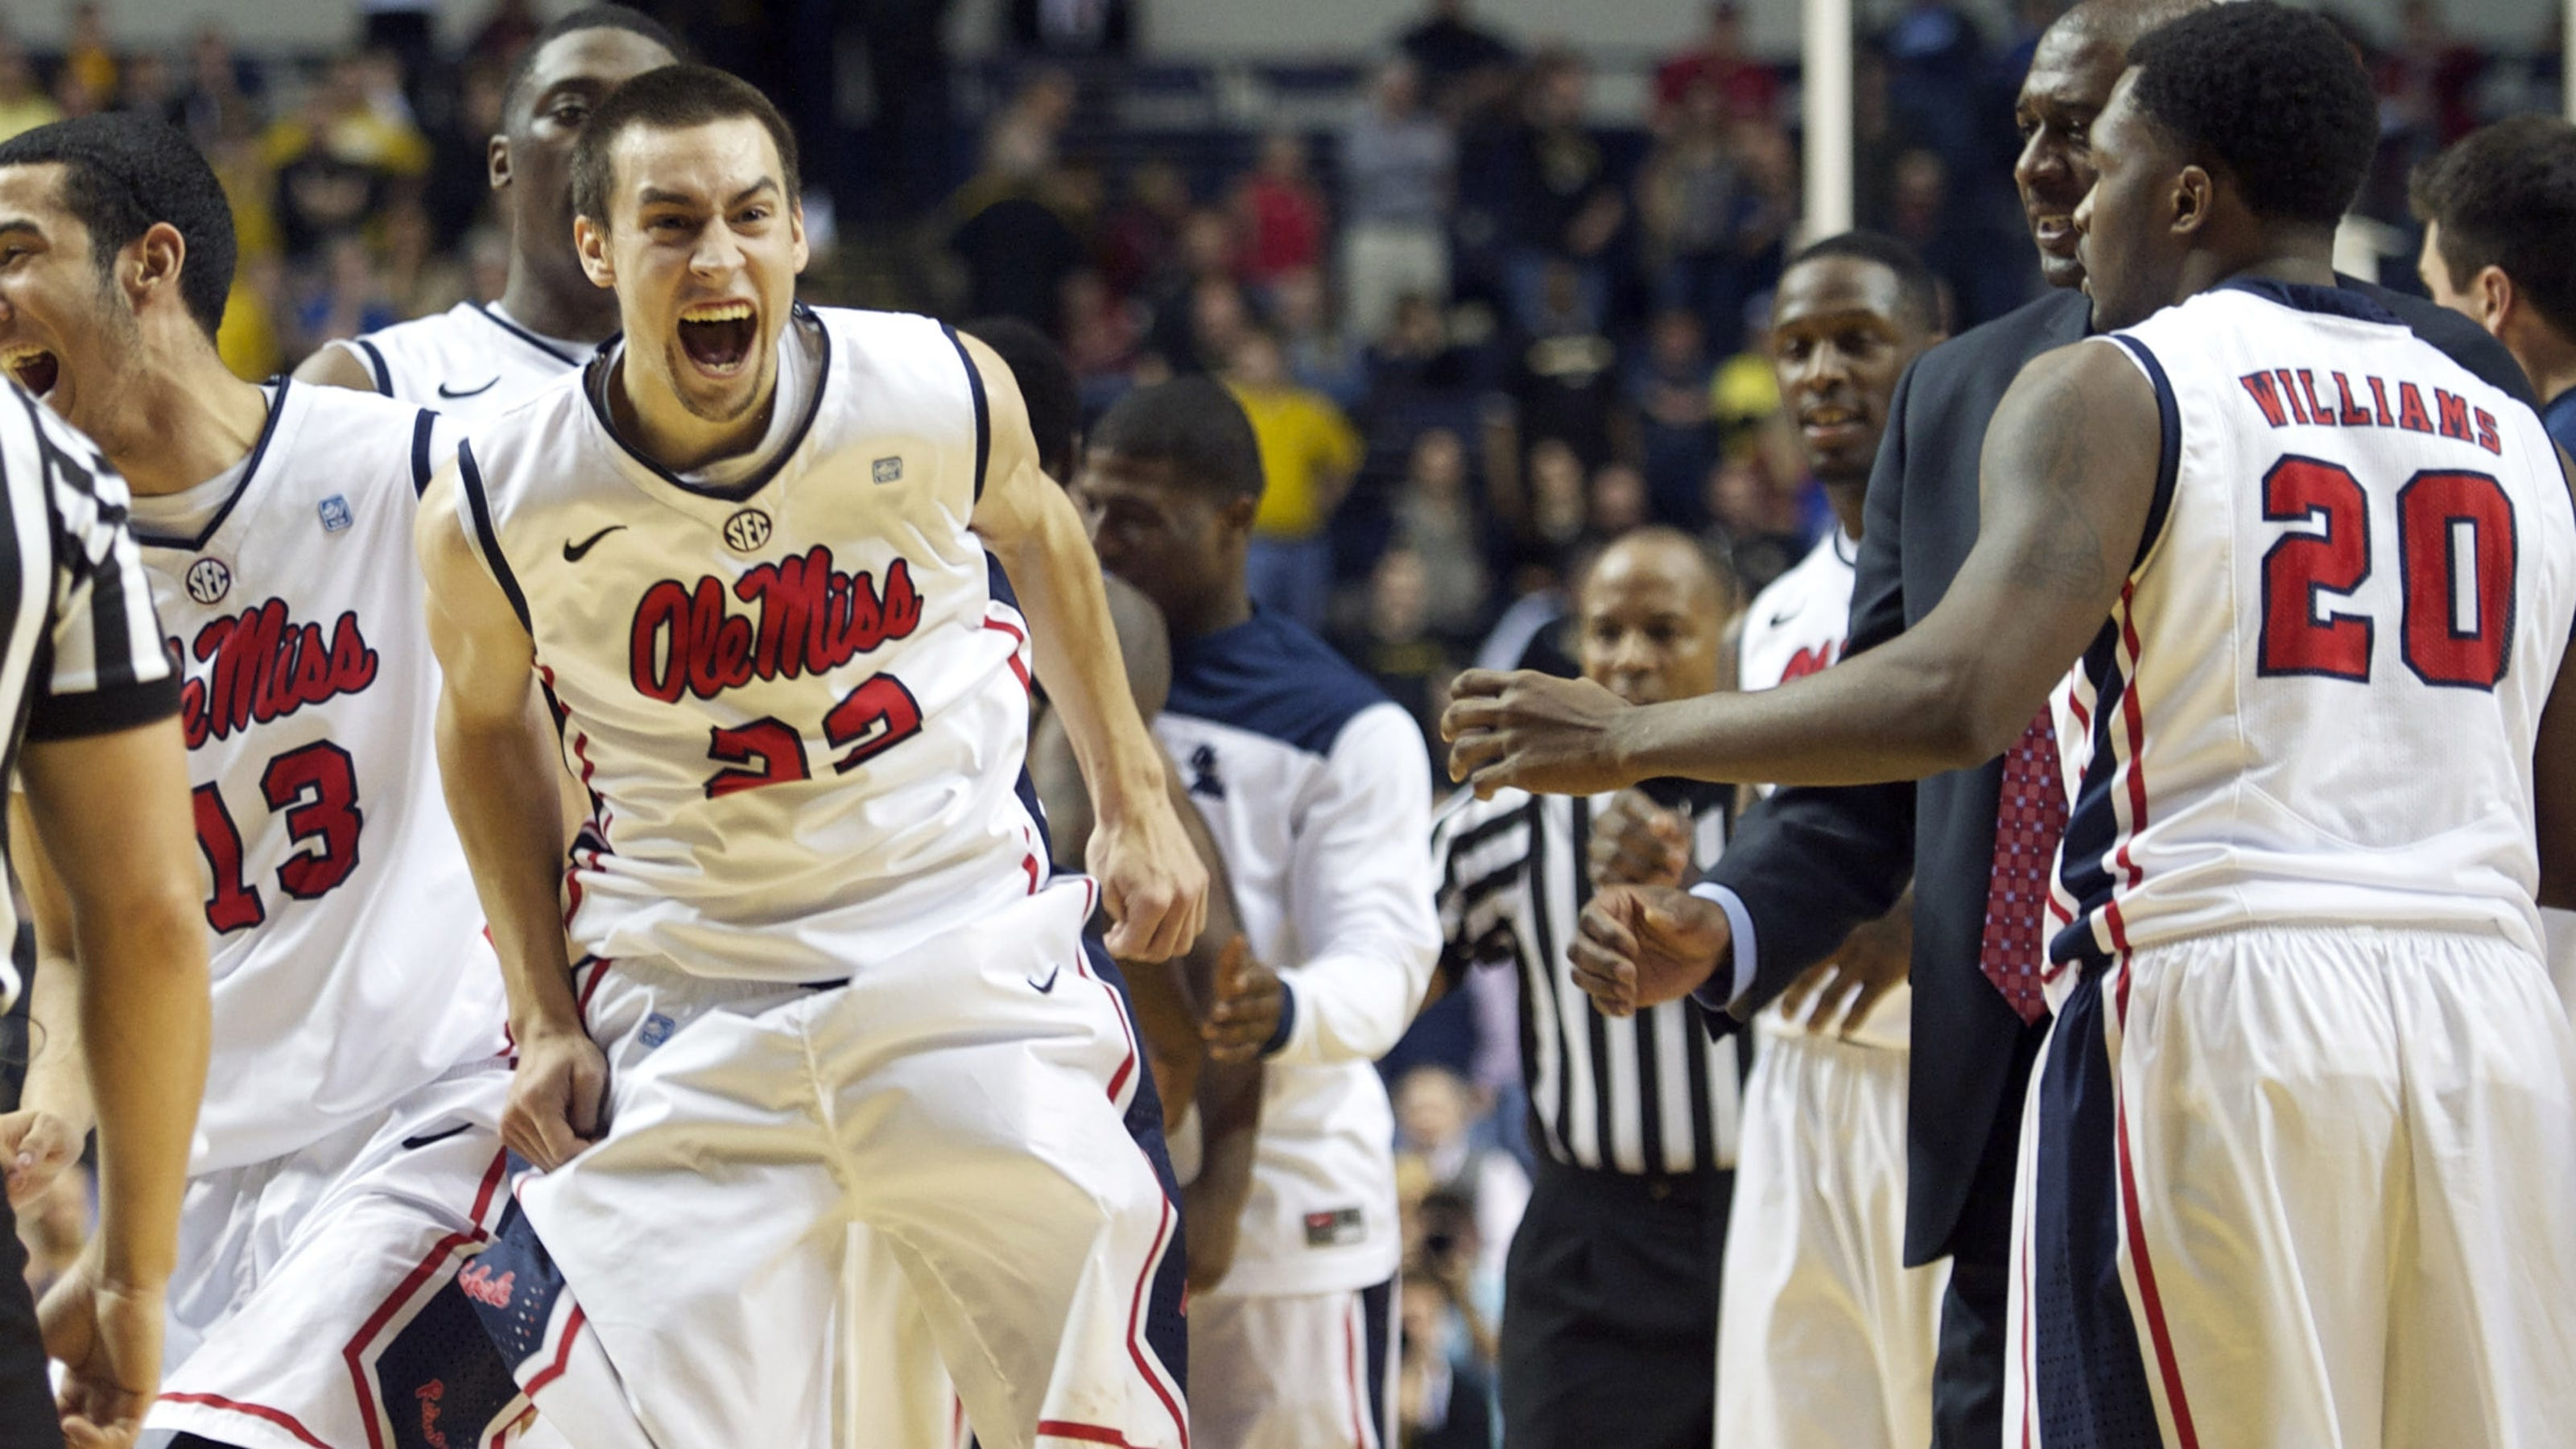 Should Ole Miss get into the NCAA tournament? Just ask ...